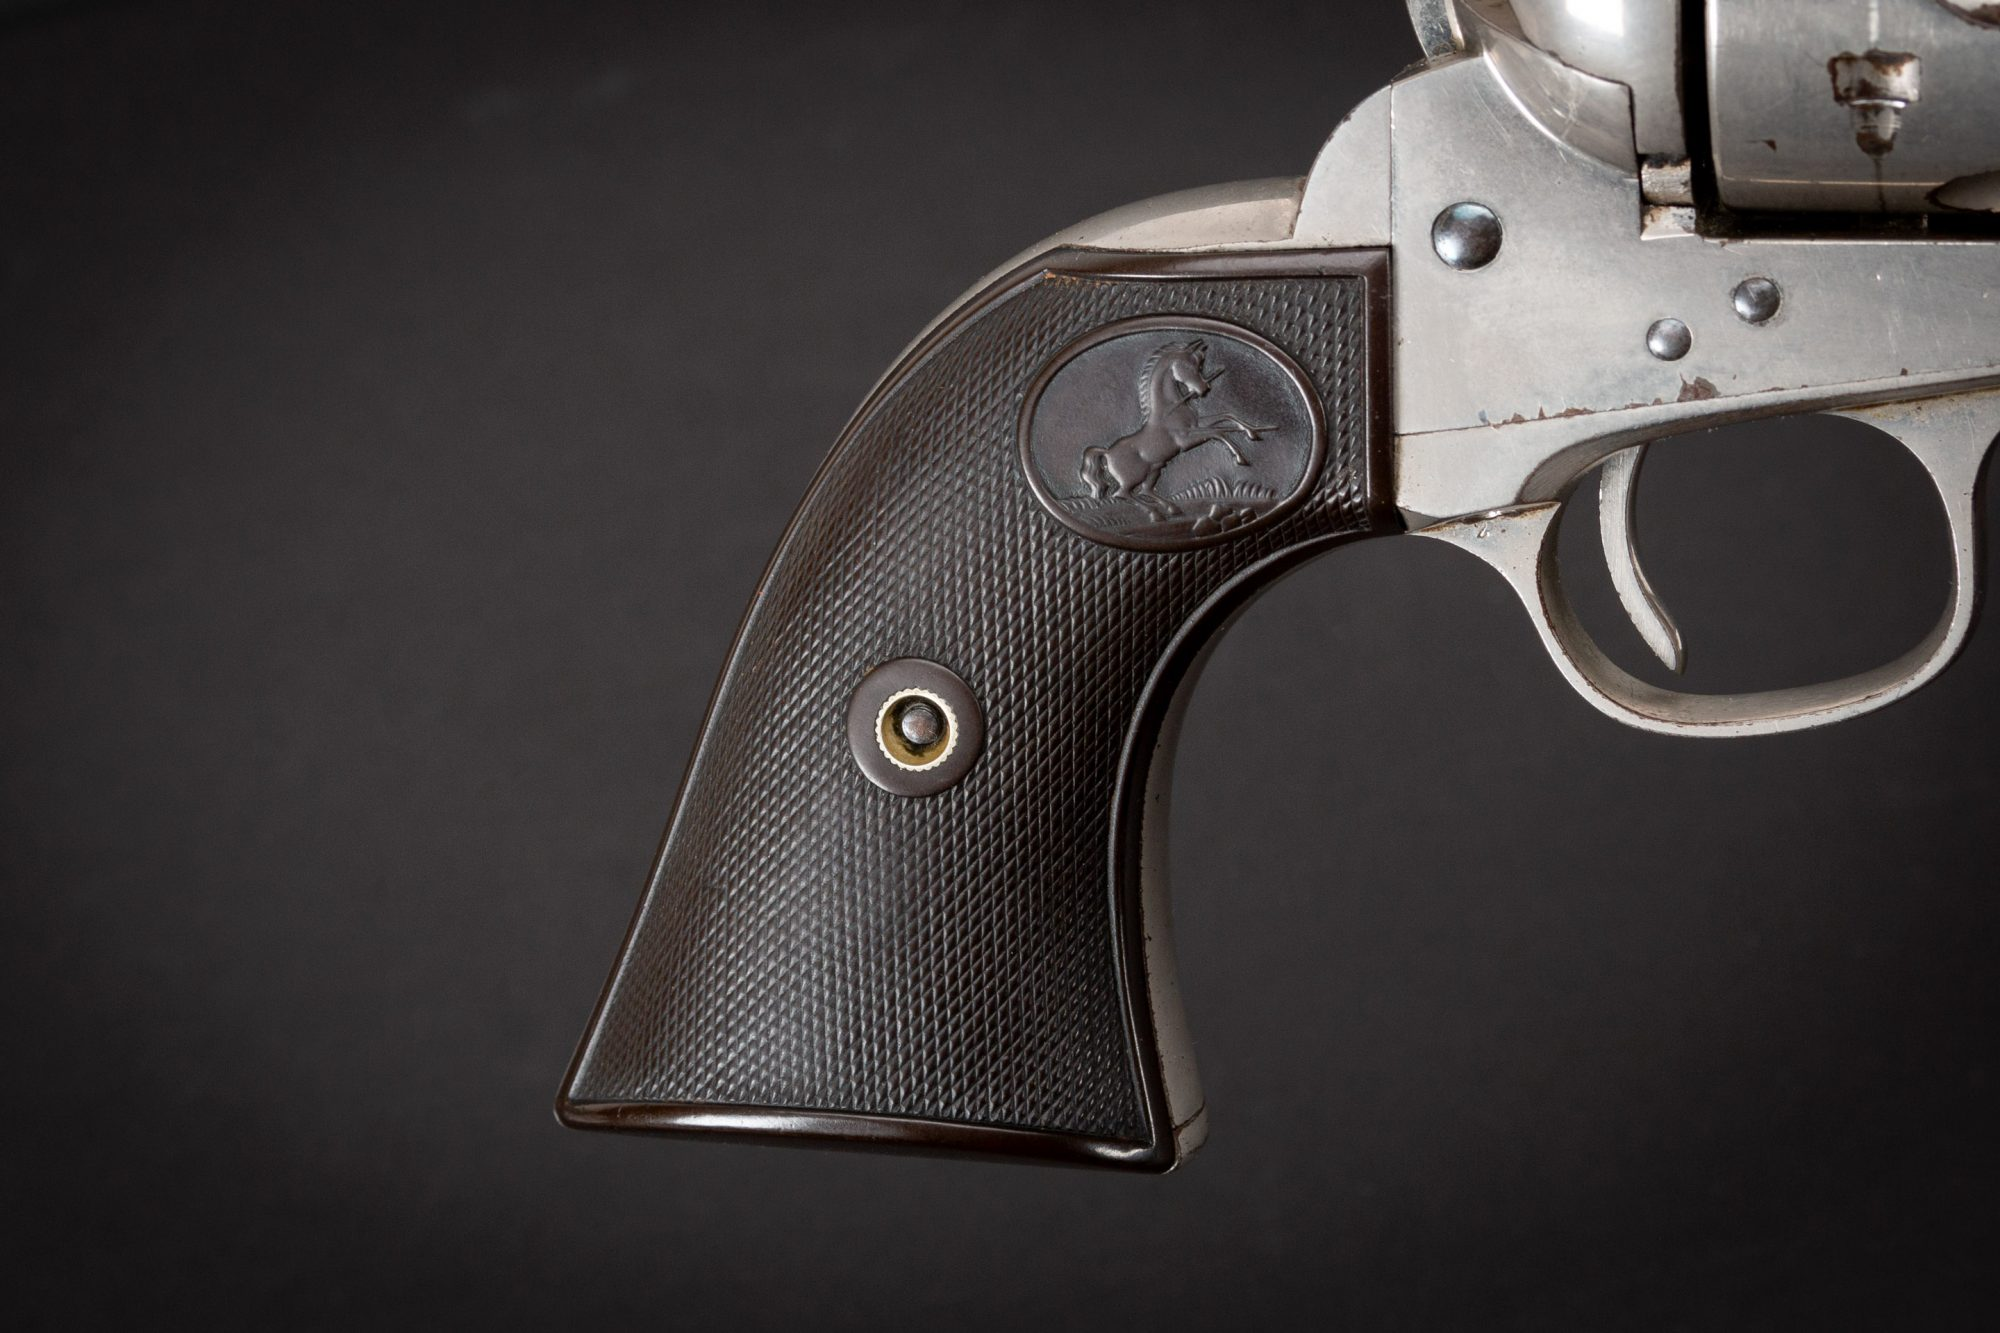 Photo of a first generation Colt Single Action Army revolver from 1897, with original nickel and nitre finishes